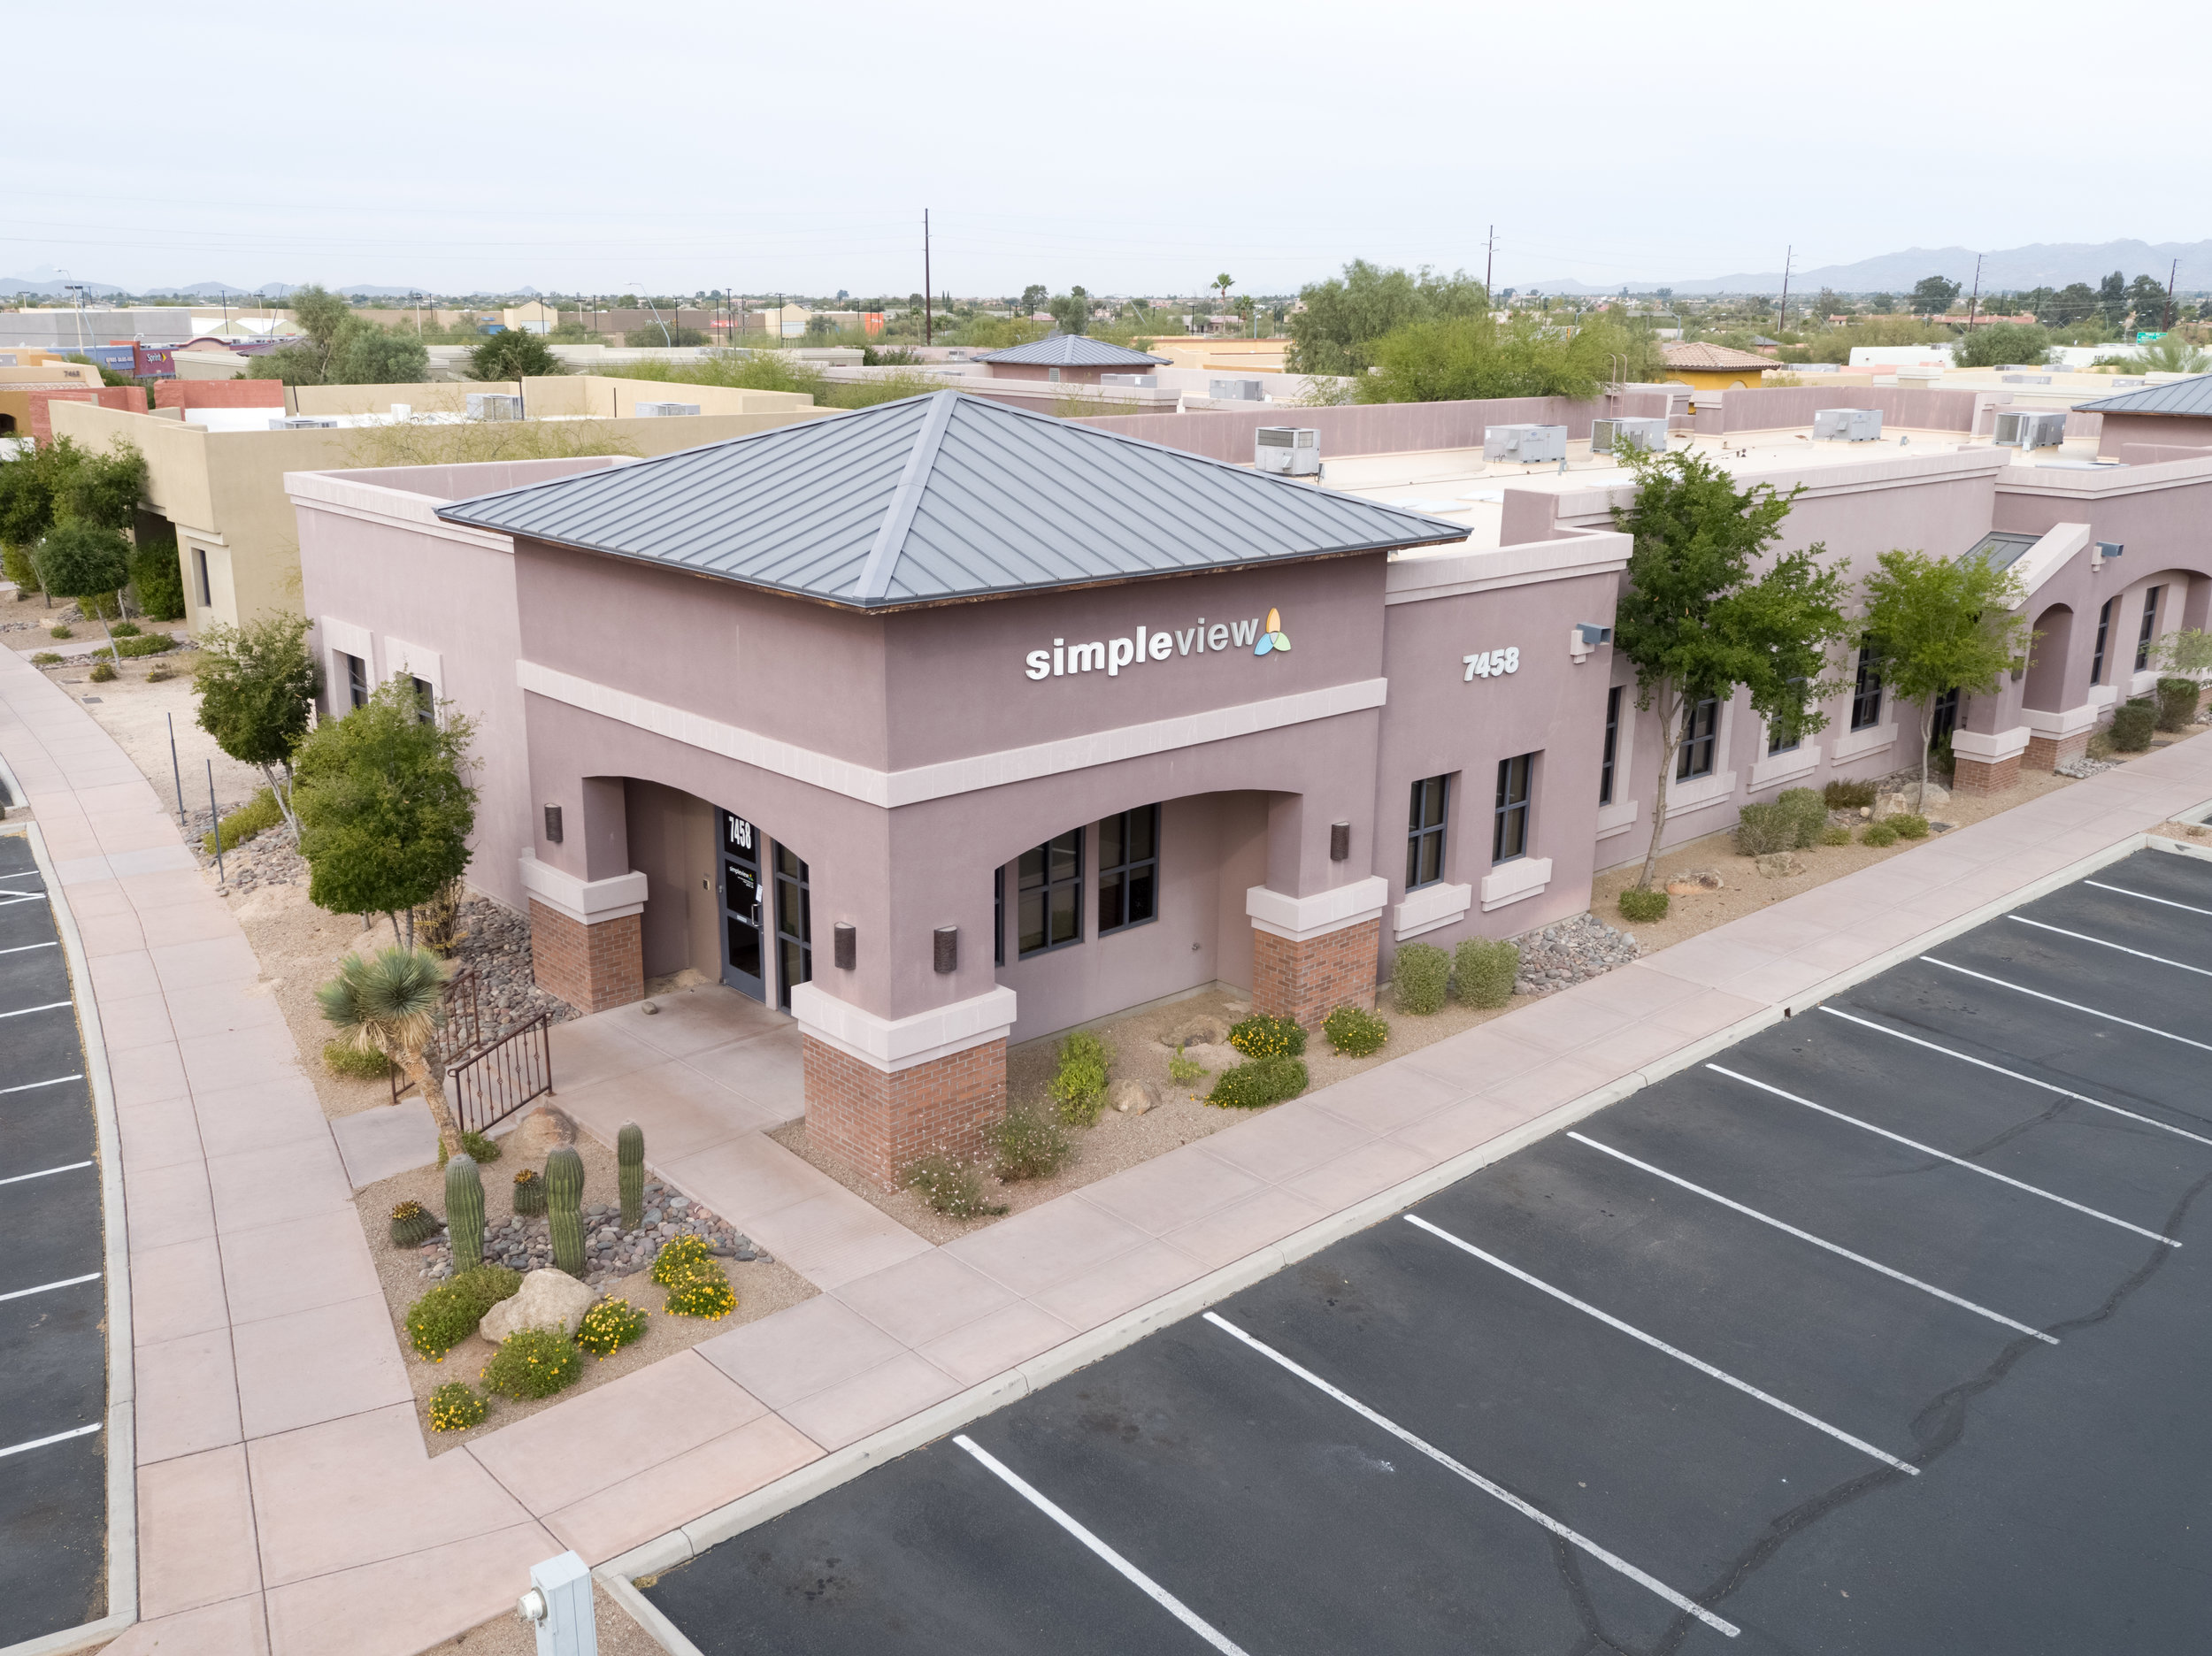 7458 & 7464 N. La Cholla    3,718-20,517 SF Class A Office Condos Available